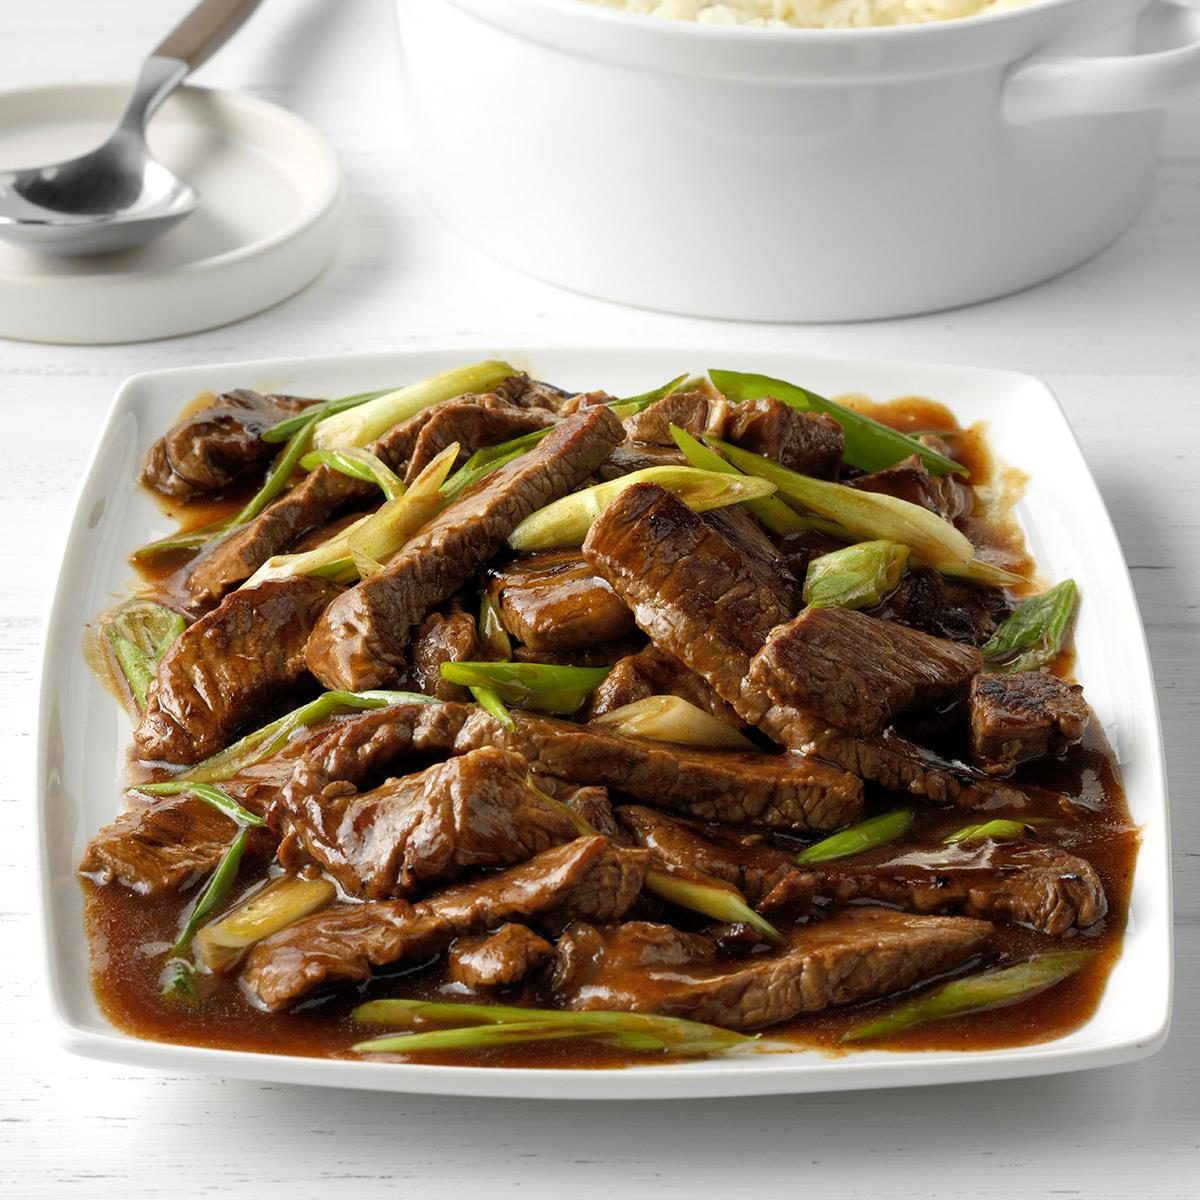 Inspired by: P.F. Chang's Mongolian Beef